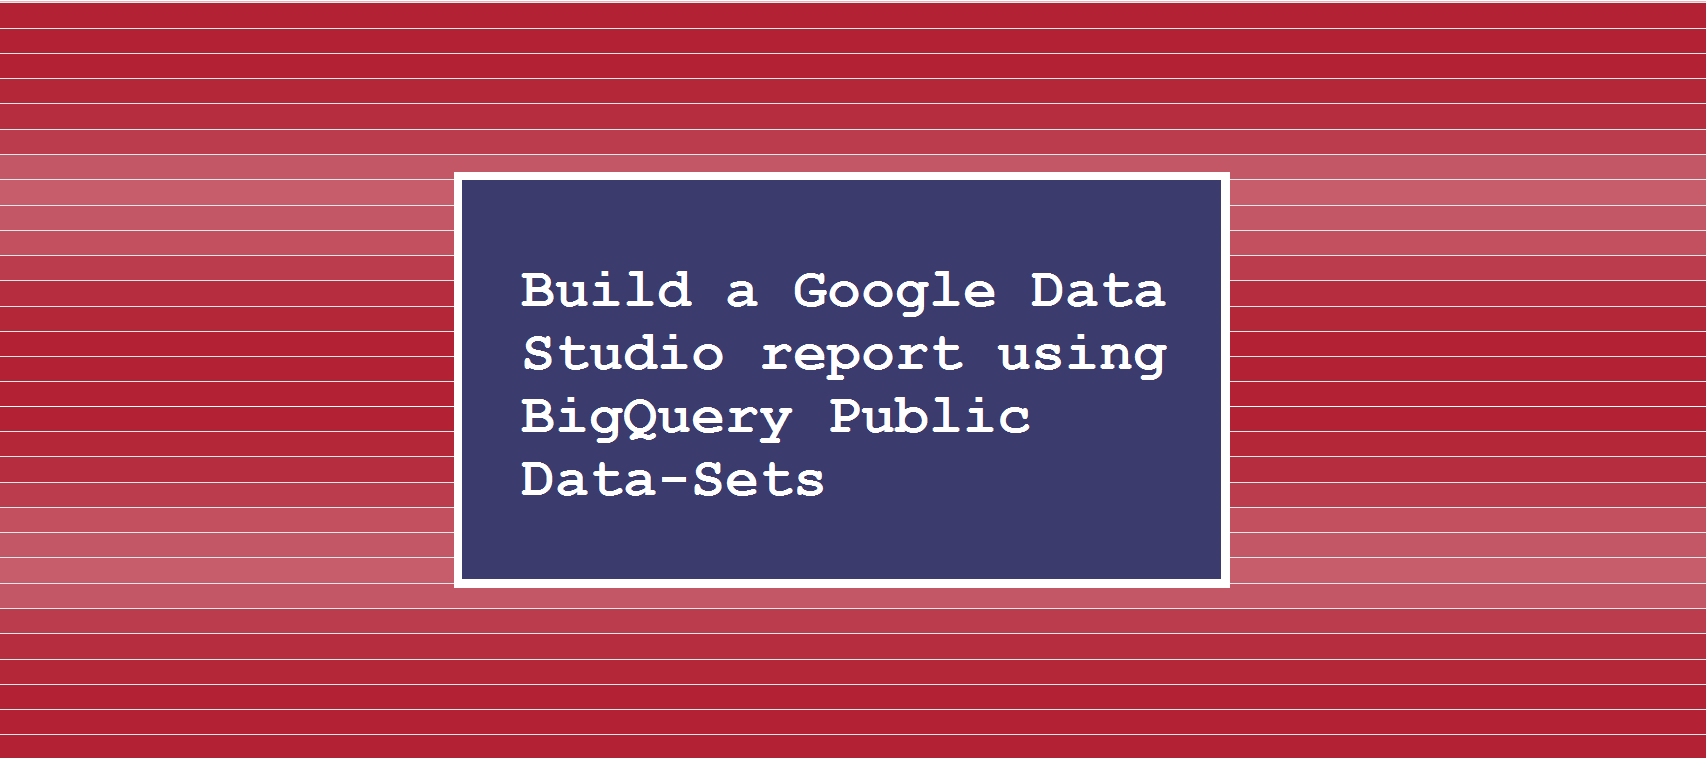 Build a Google Data Studio report using BigQuery Public Data-Sets